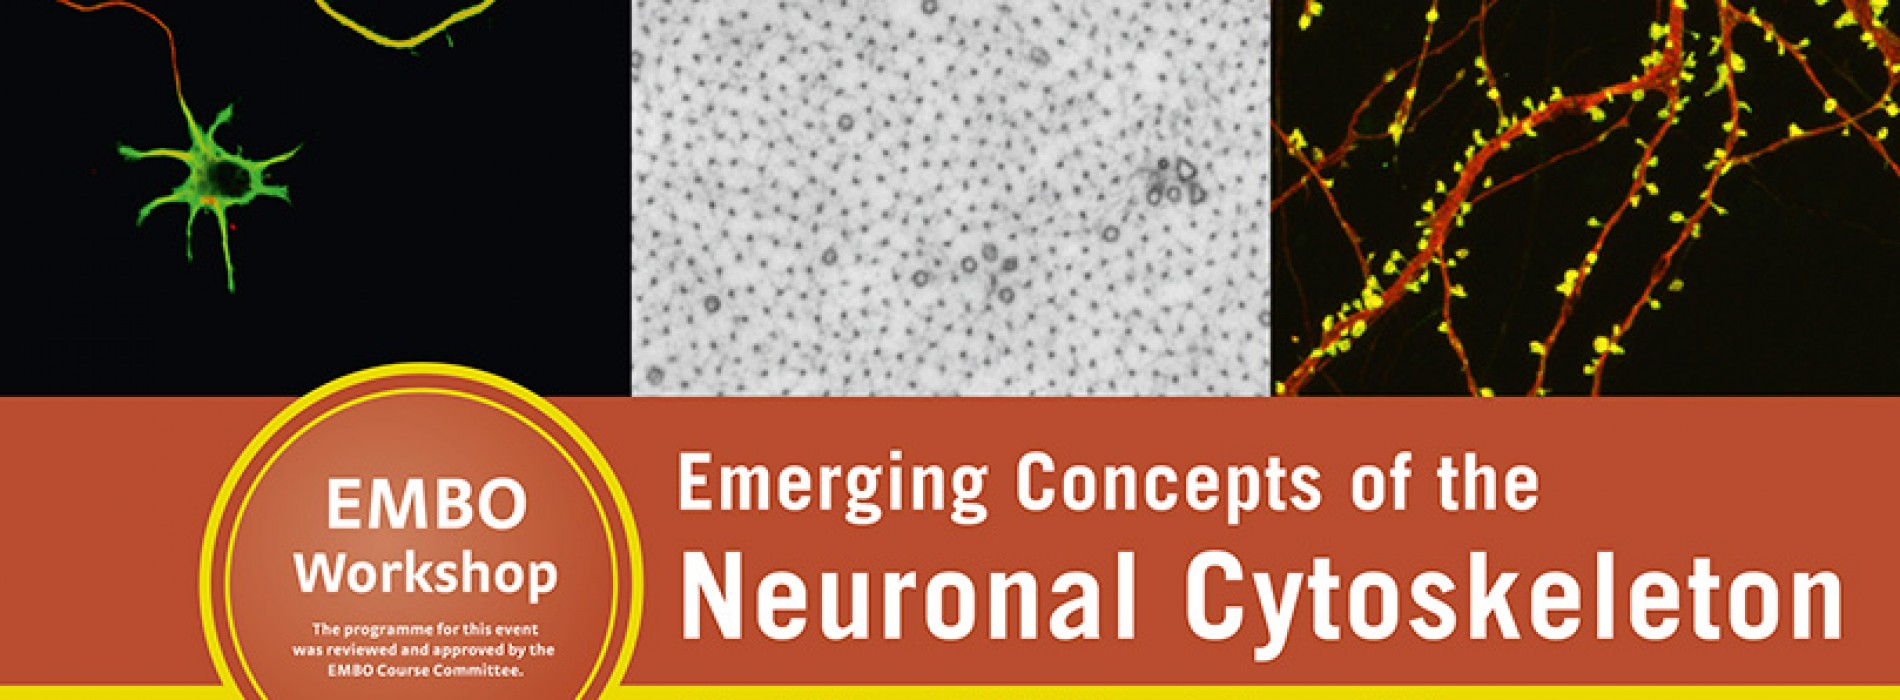 EMBO WORKSHOP Emerging Concepts of the NEURONAL CYTOSKELETON